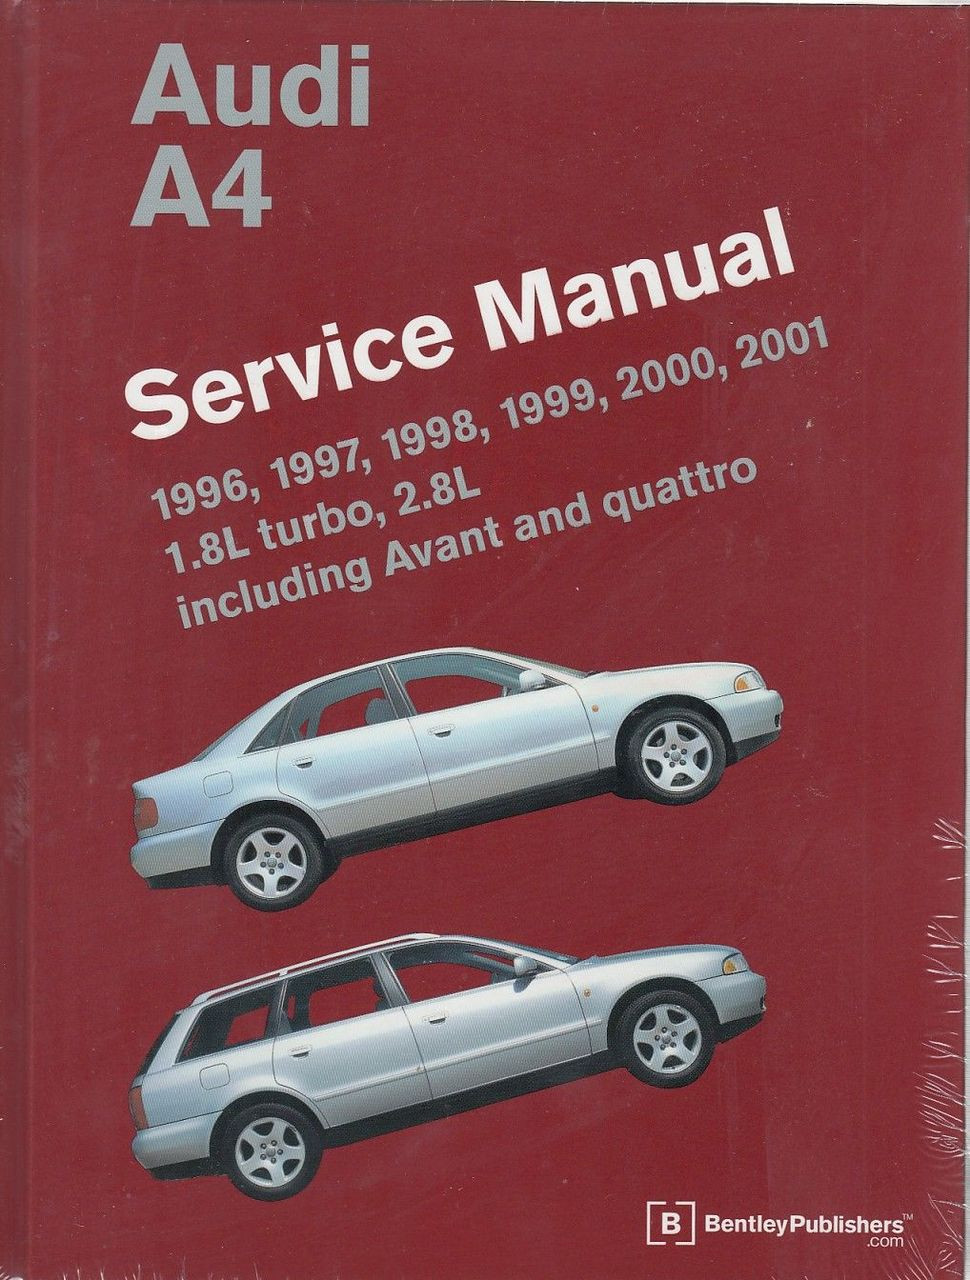 Audi A4 1996 - 2001 Workshop Manual ...